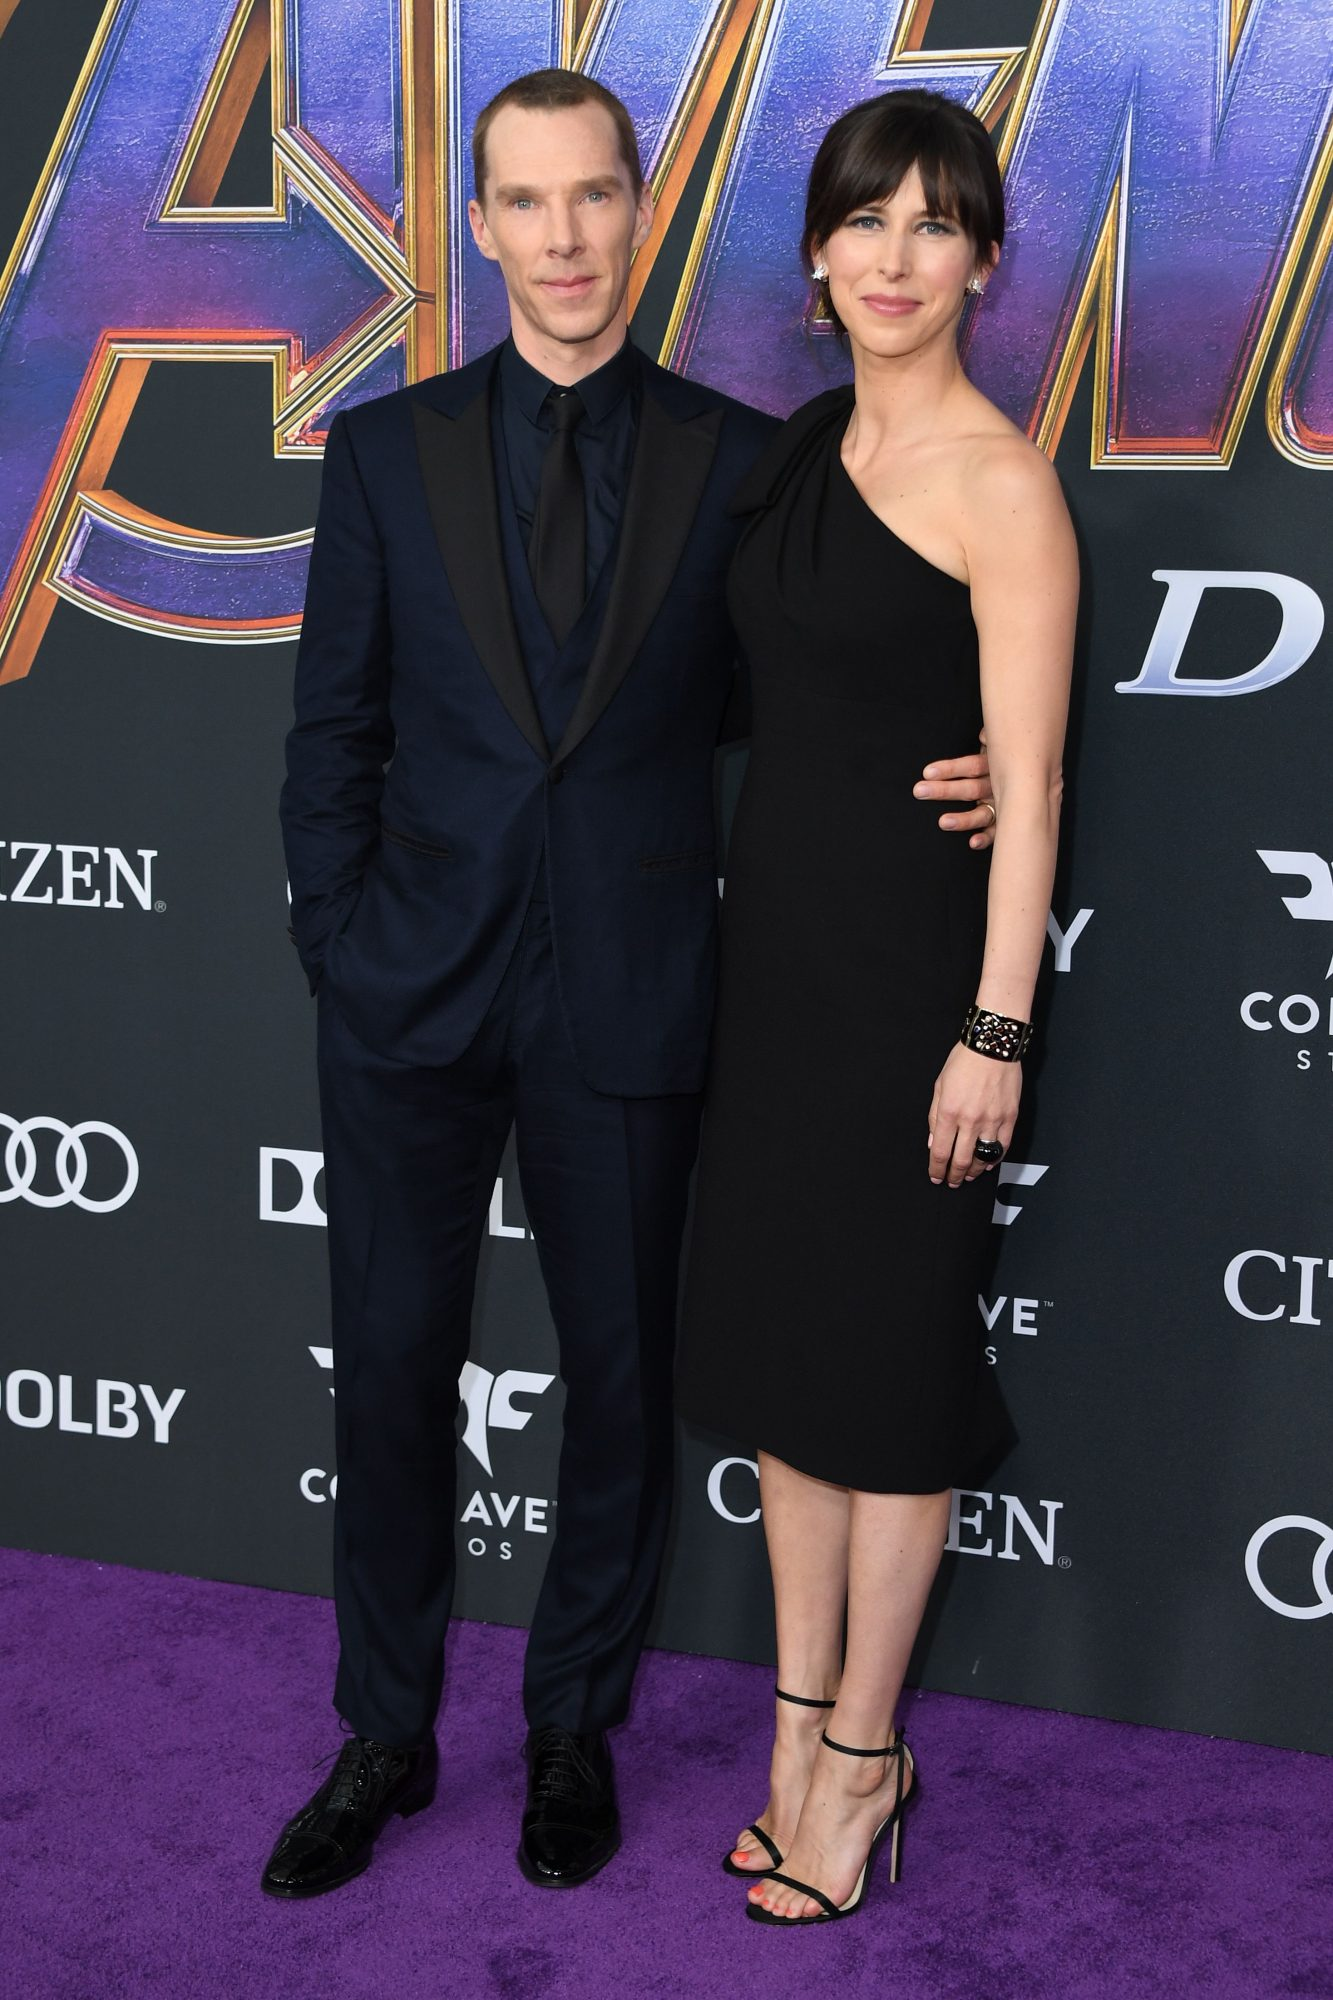 """English actor Benedict Cumberbatch and English theatre director Sophie Hunter arrive for the World premiere of Marvel Studios' """"Avengers: Endgame"""" at the Los Angeles Convention Center on April 22, 2019 in Los Angeles. (Photo by VALERIE MACON/AFP/Getty Images)"""